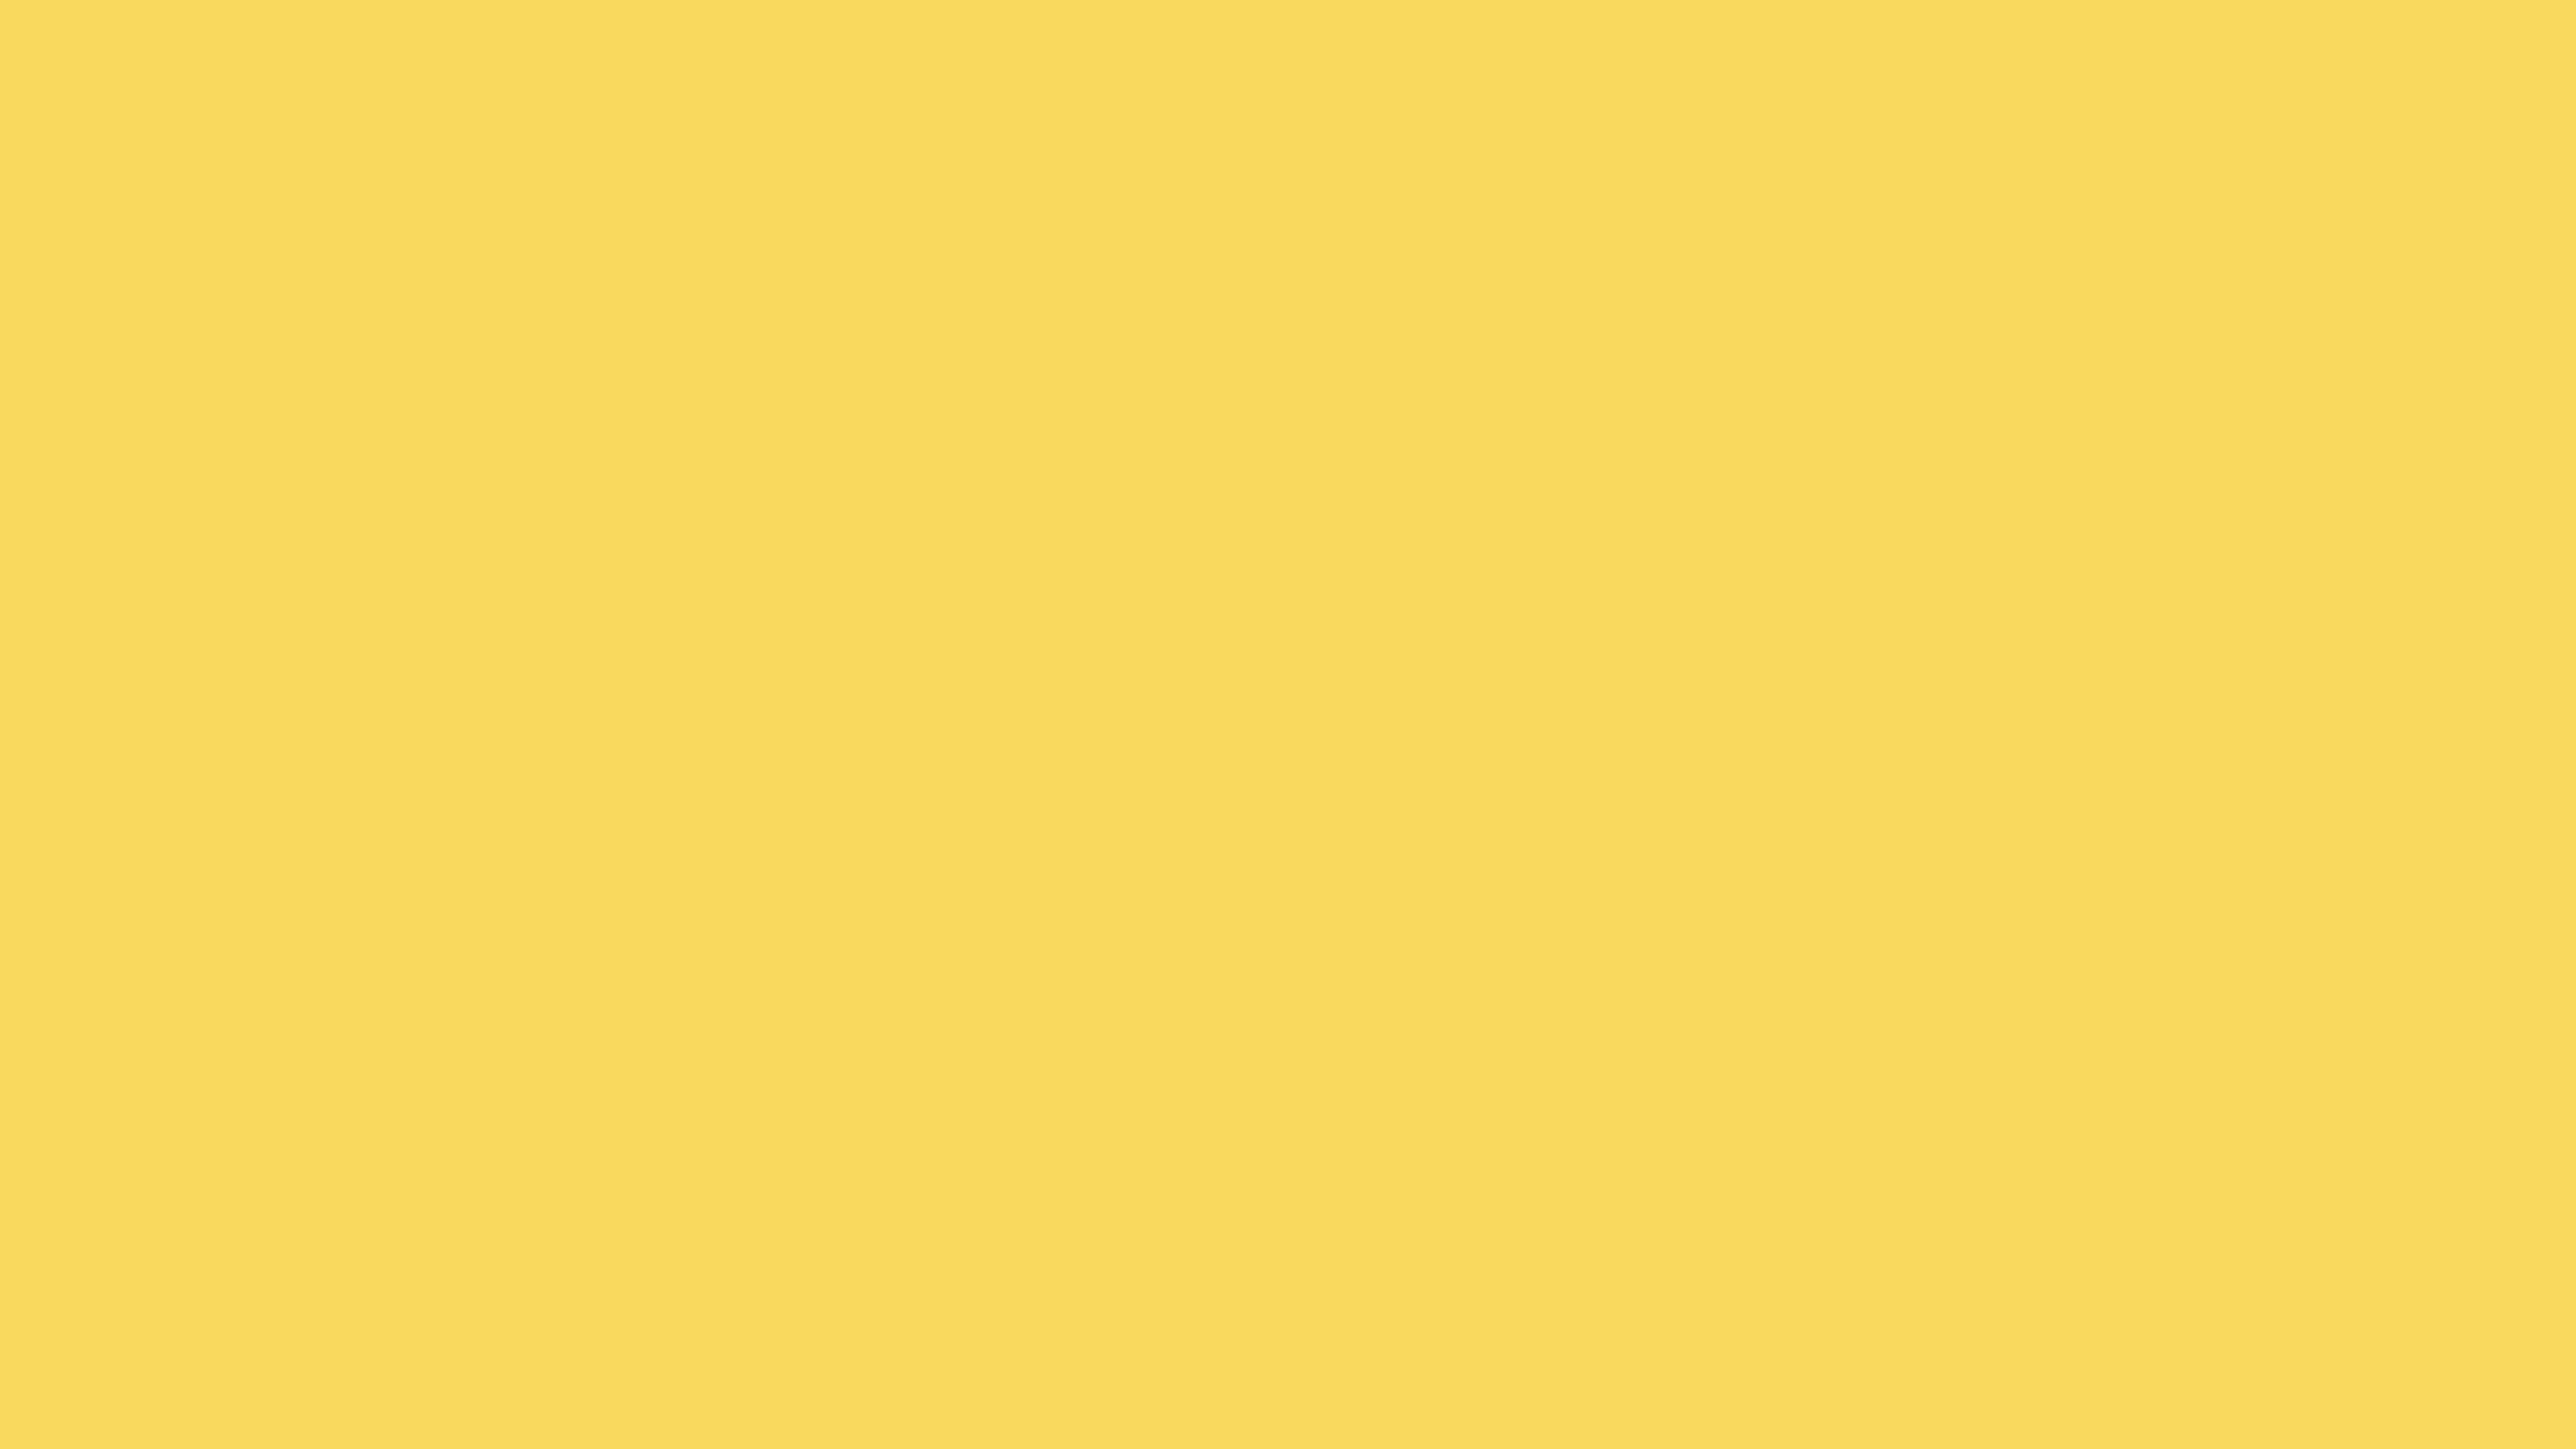 4096x2304 Naples Yellow Solid Color Background